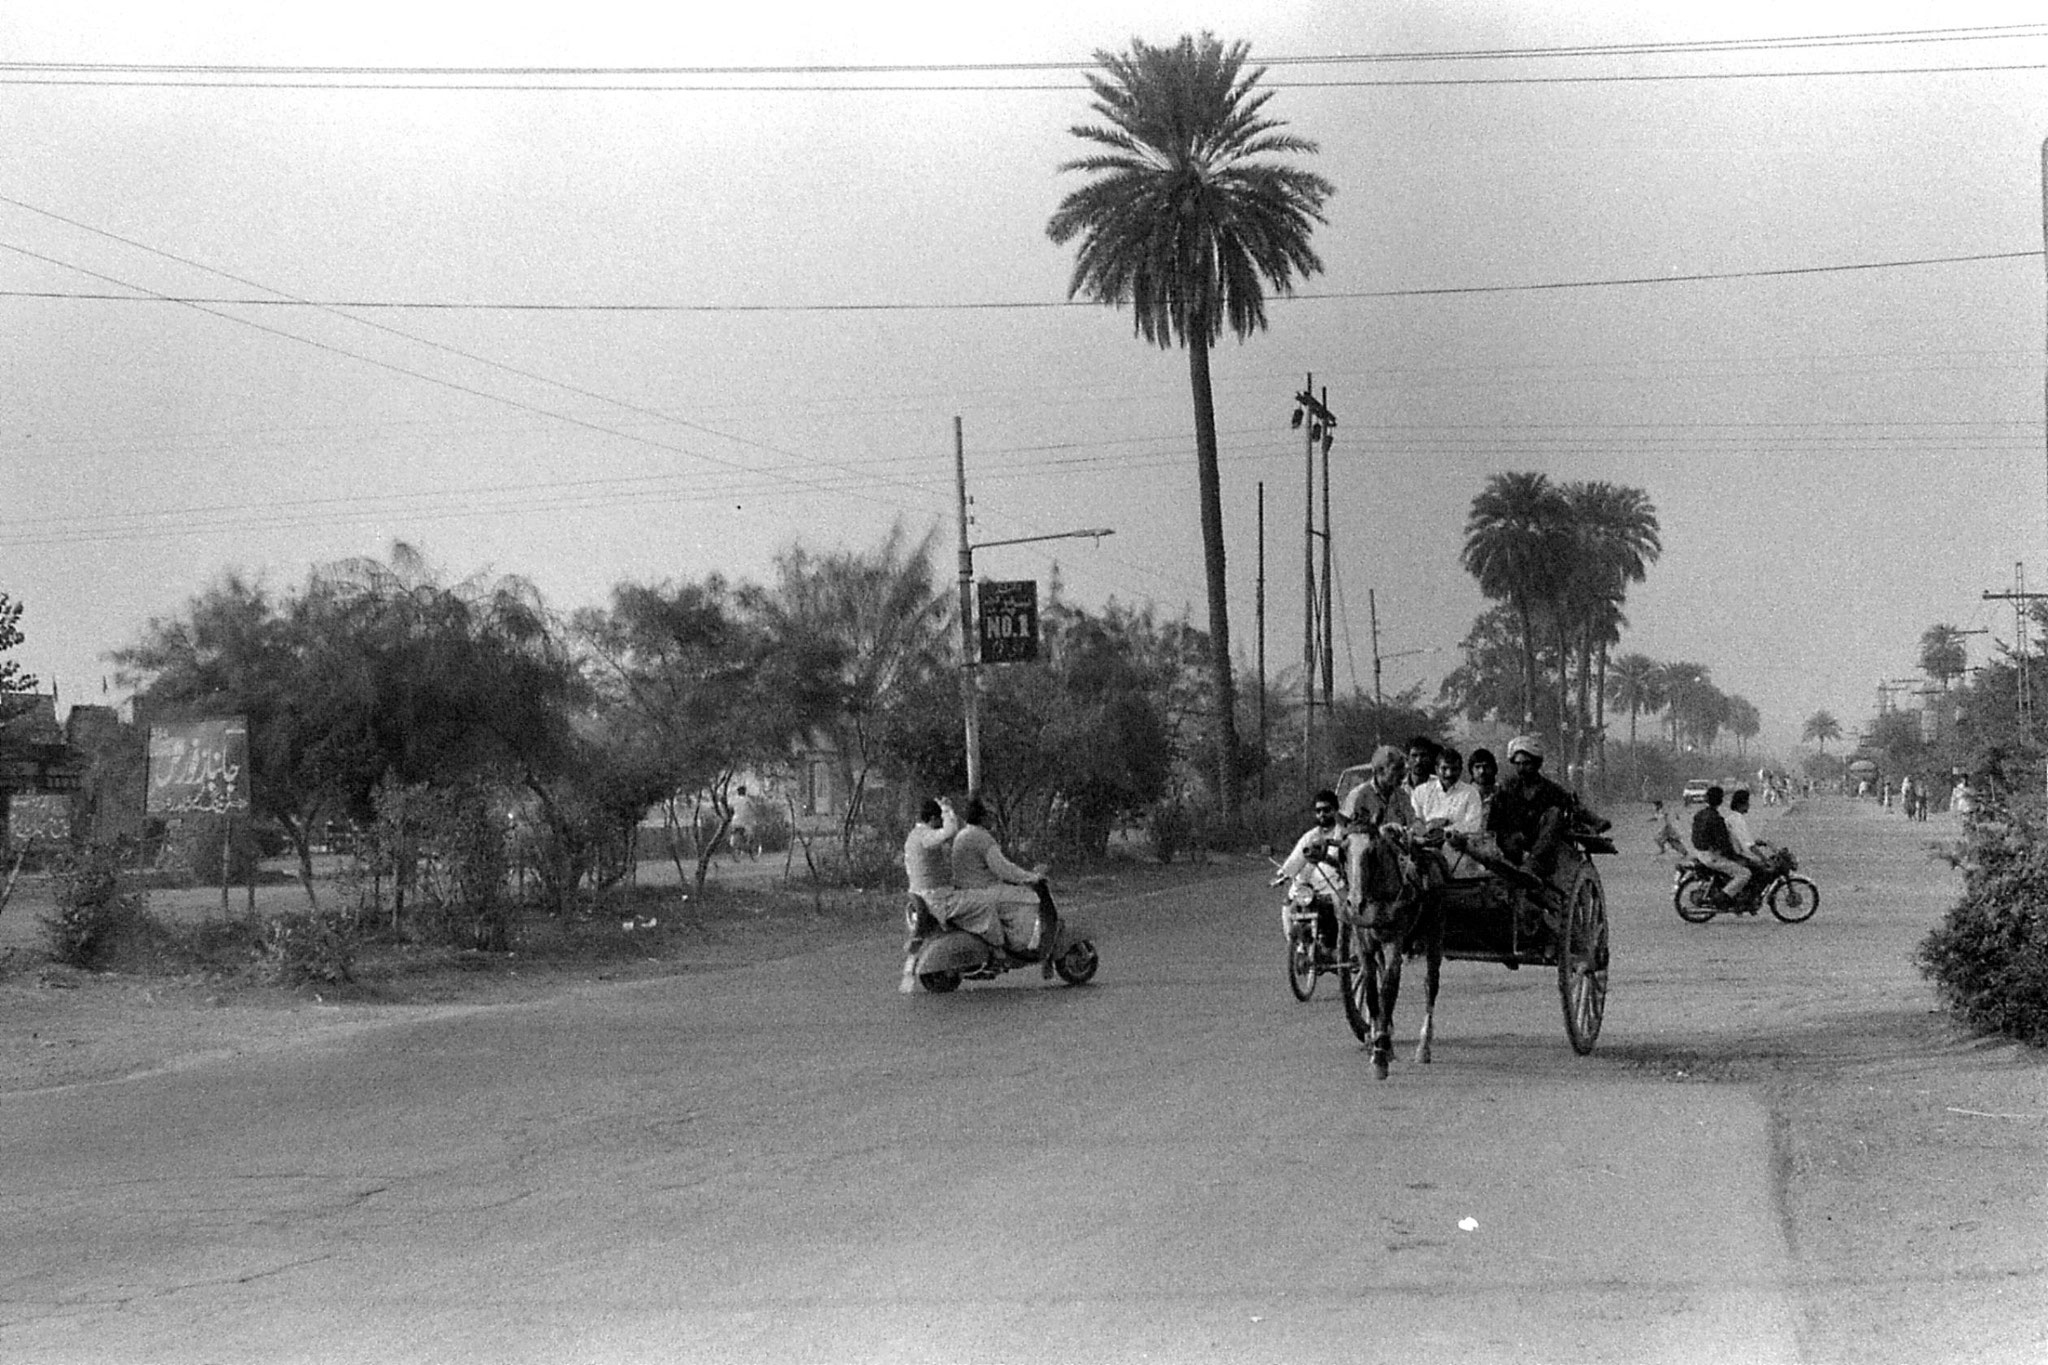 10/11/1989: 0: Lahore Grand Trunk Road to NW